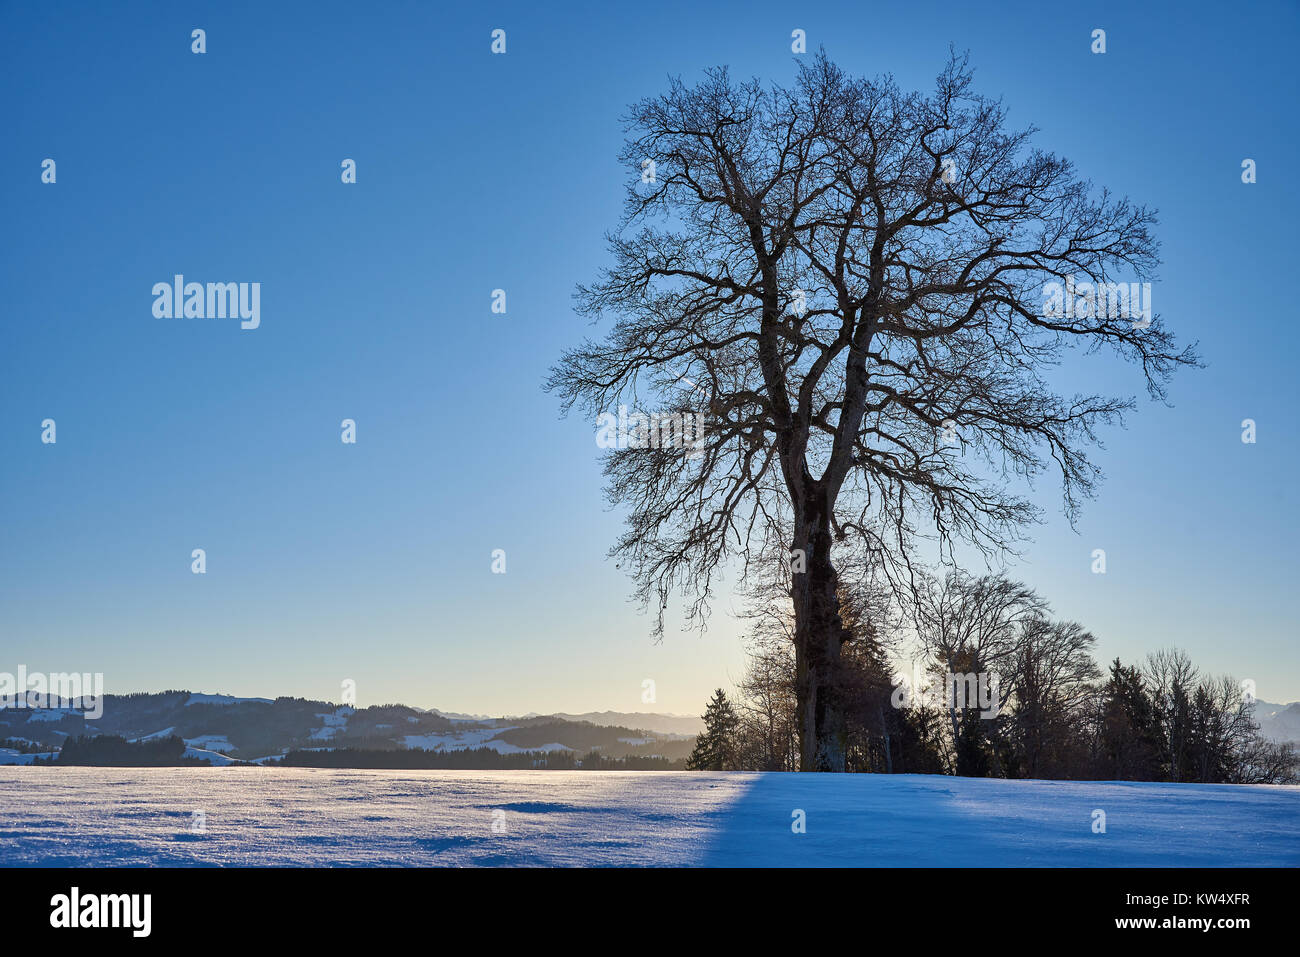 morning scenery in winter. a big tree in backlight and a deep blue